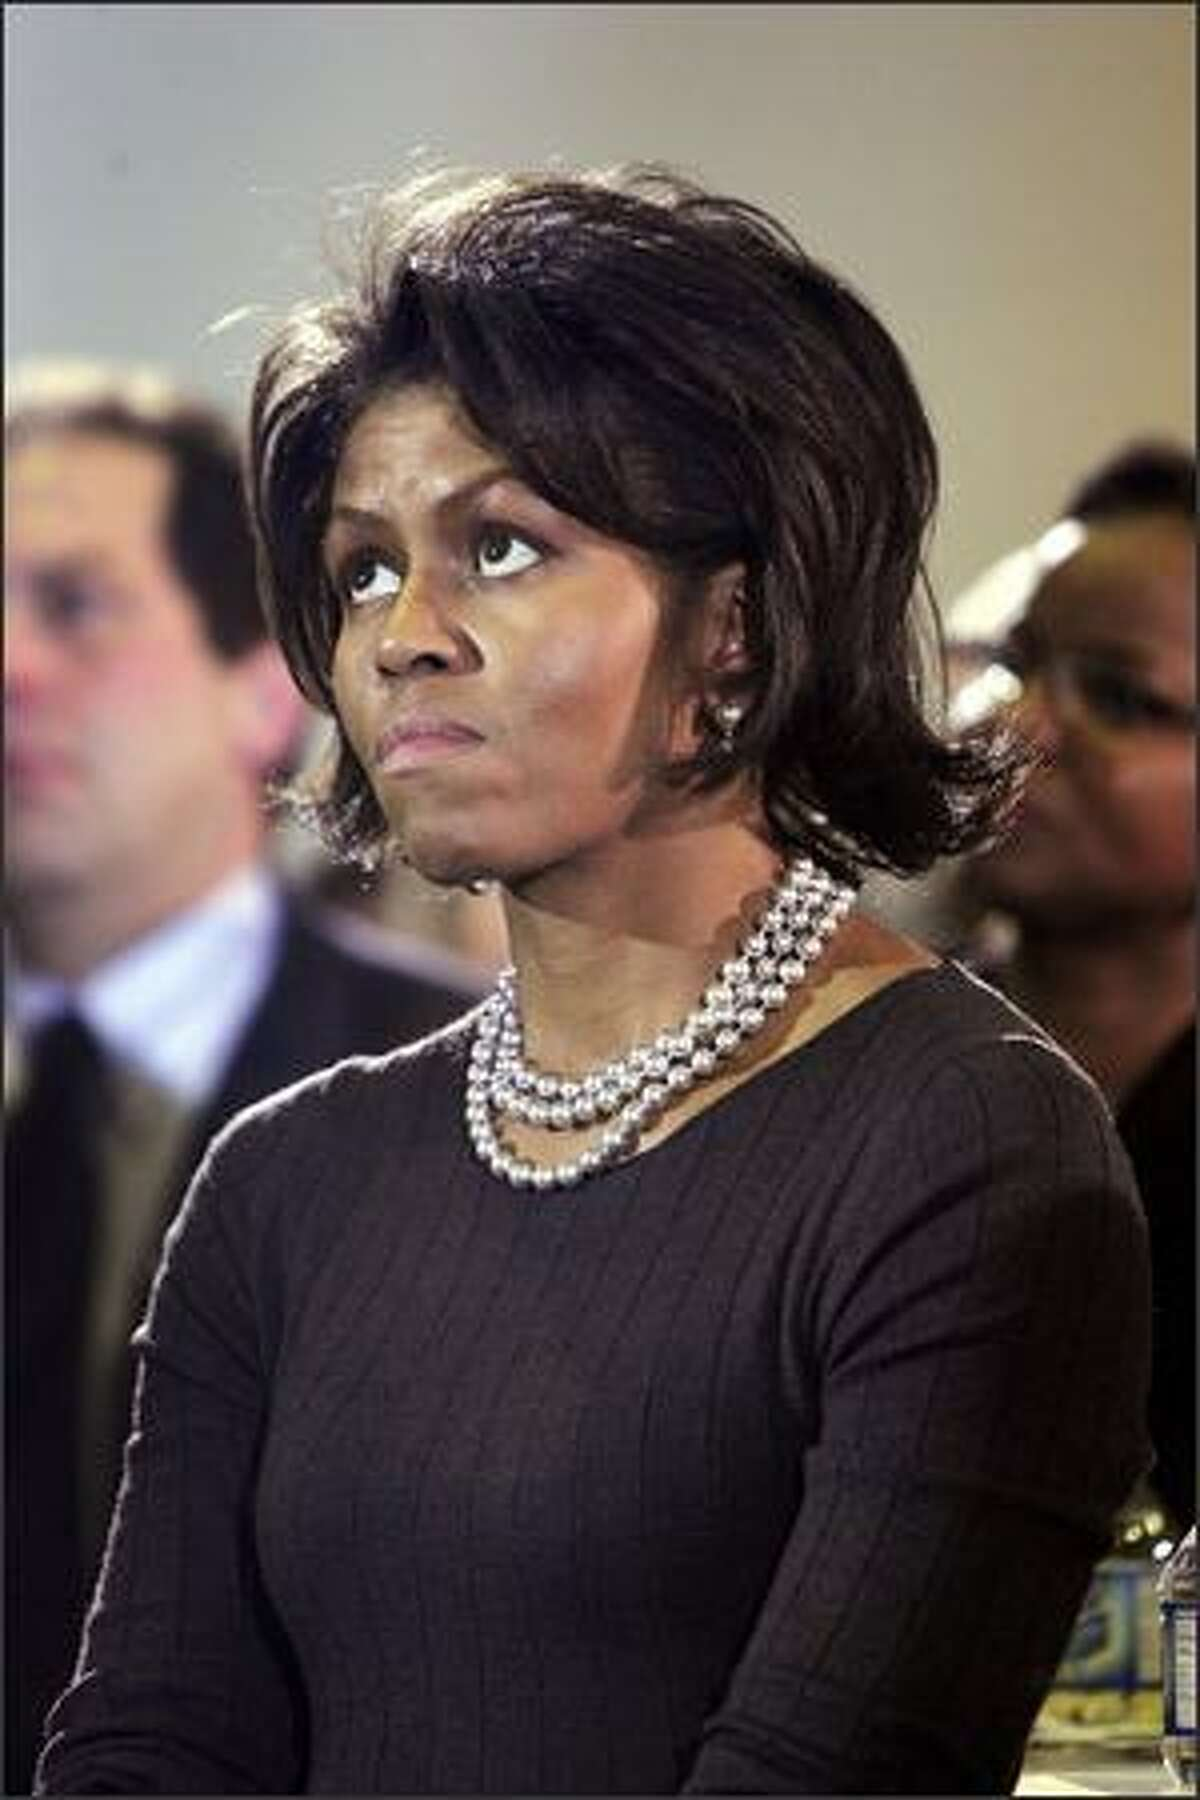 Michelle Obama, wife of Senator Barack Obama (D-IL), listen to her husband address a crowd gathered for a campaign rally at Central Middle School Feb. 10, 2007, in Waterloo, Iowa. U.S. Sen. Barack Obama (D-IL) announced at a rally in Sprinfield, Illinois Feb. 10 that he would seek the Democratic nomination for U.S. President.